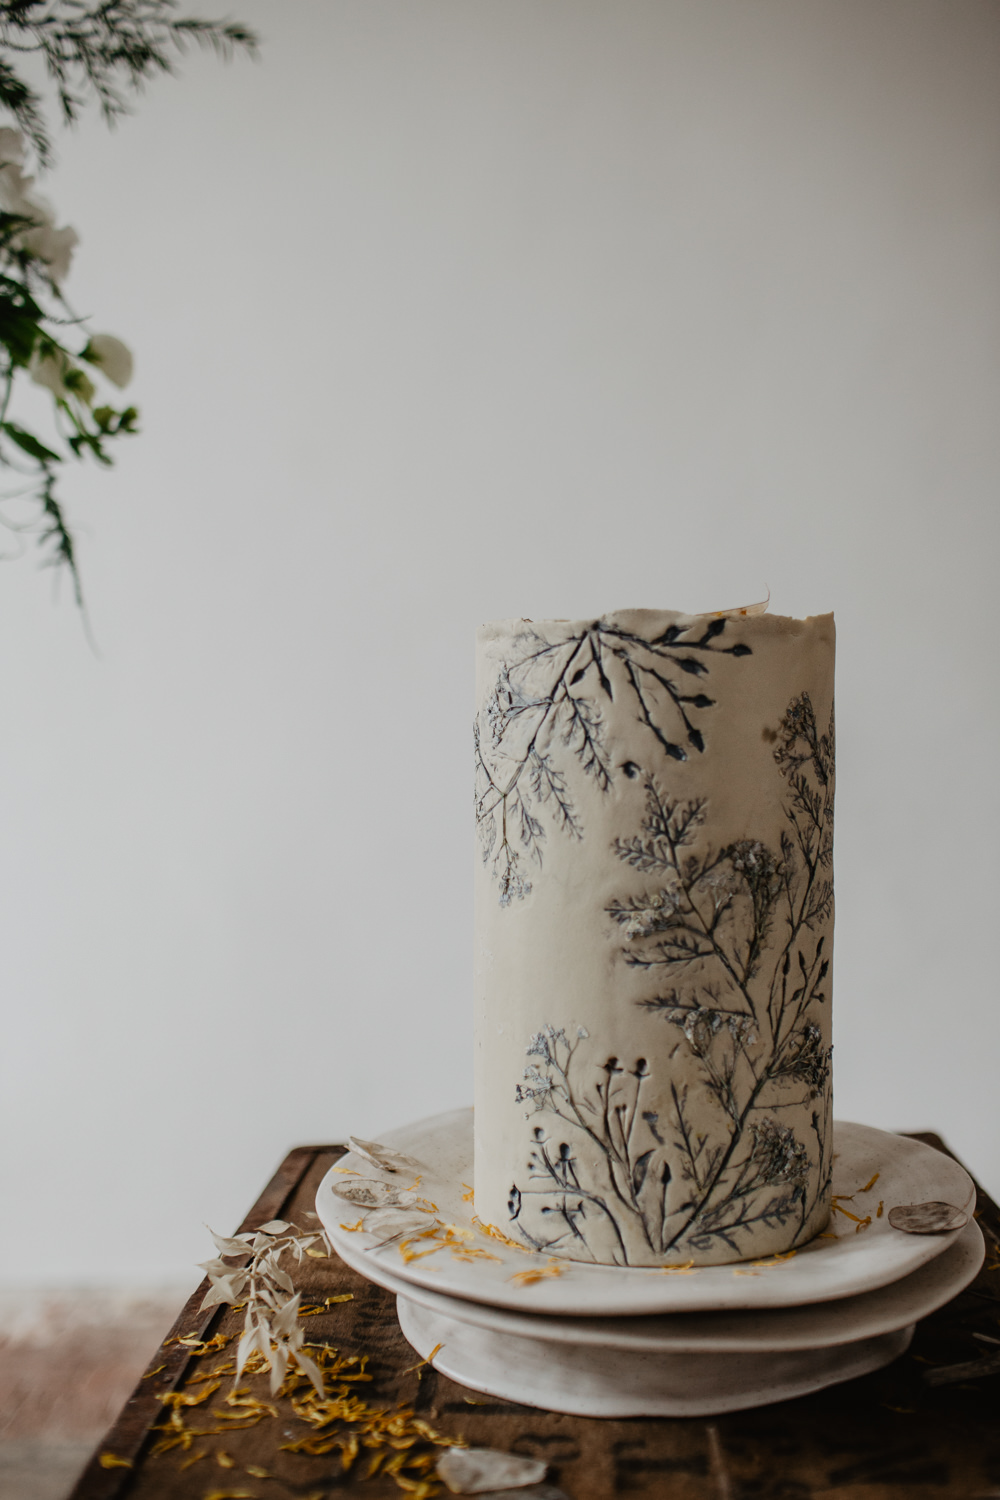 Cake Cakes Flowers Floral Leaf Leaves Botanical Earthy Natural Elopement Wedding Ideas Oilvejoy Photography